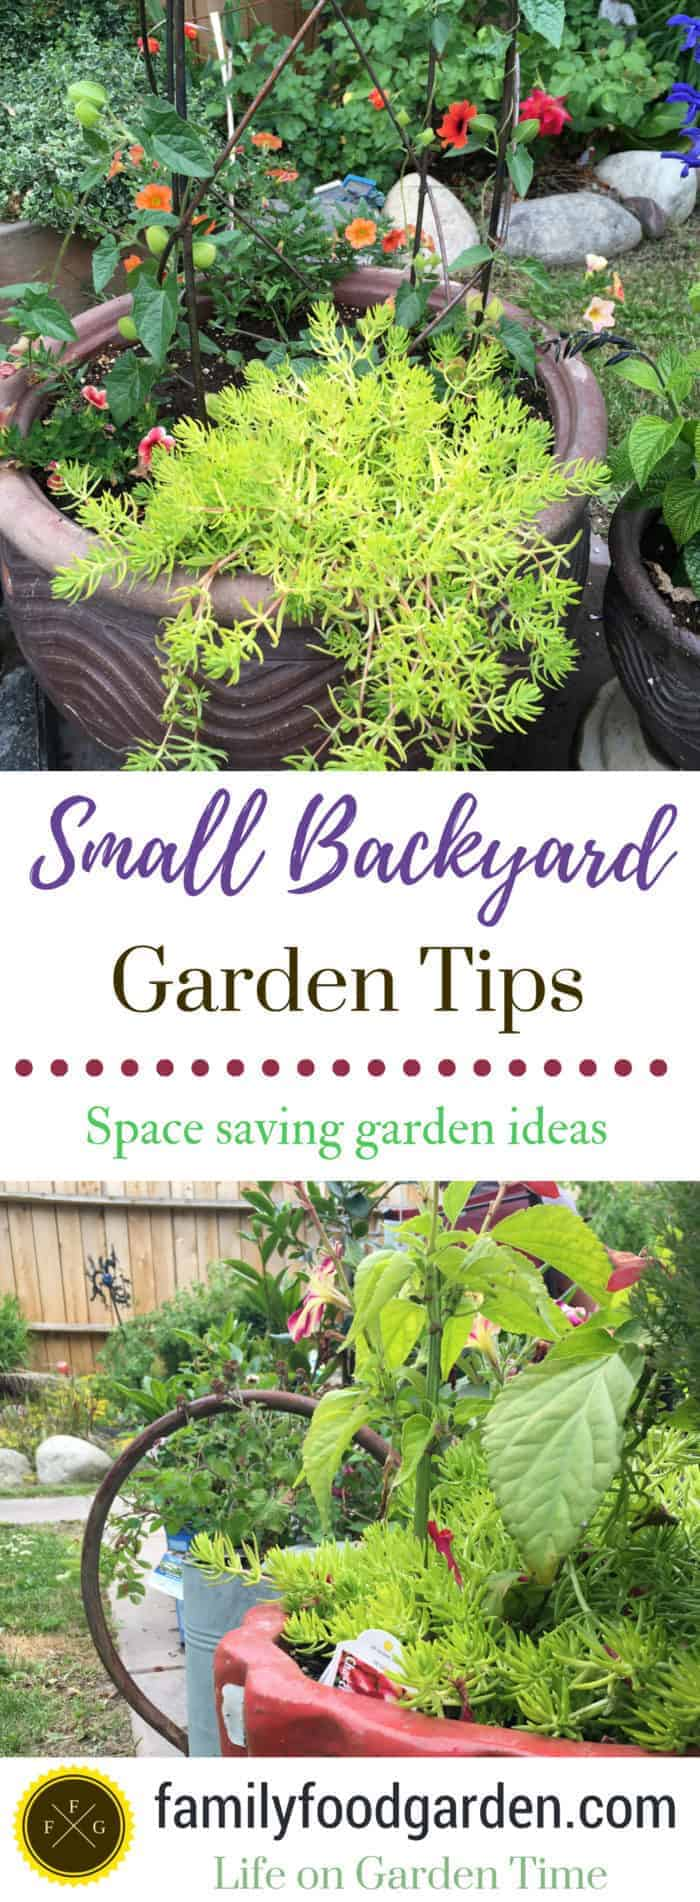 What Are Your Best Small Backyard Growing Tips?